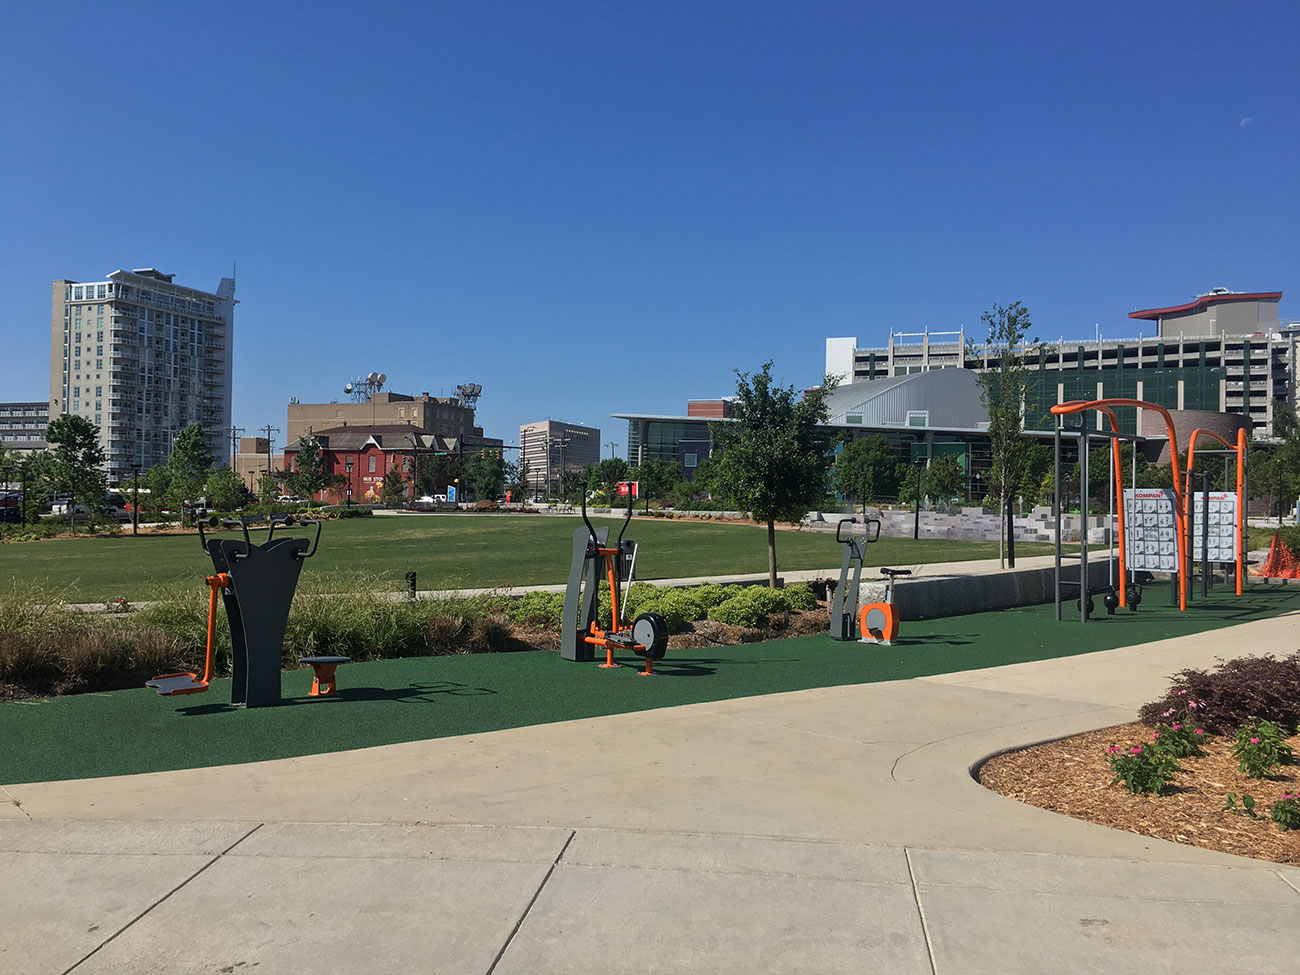 Can you actually get a good workout using First Ward Park's exercise equipment?